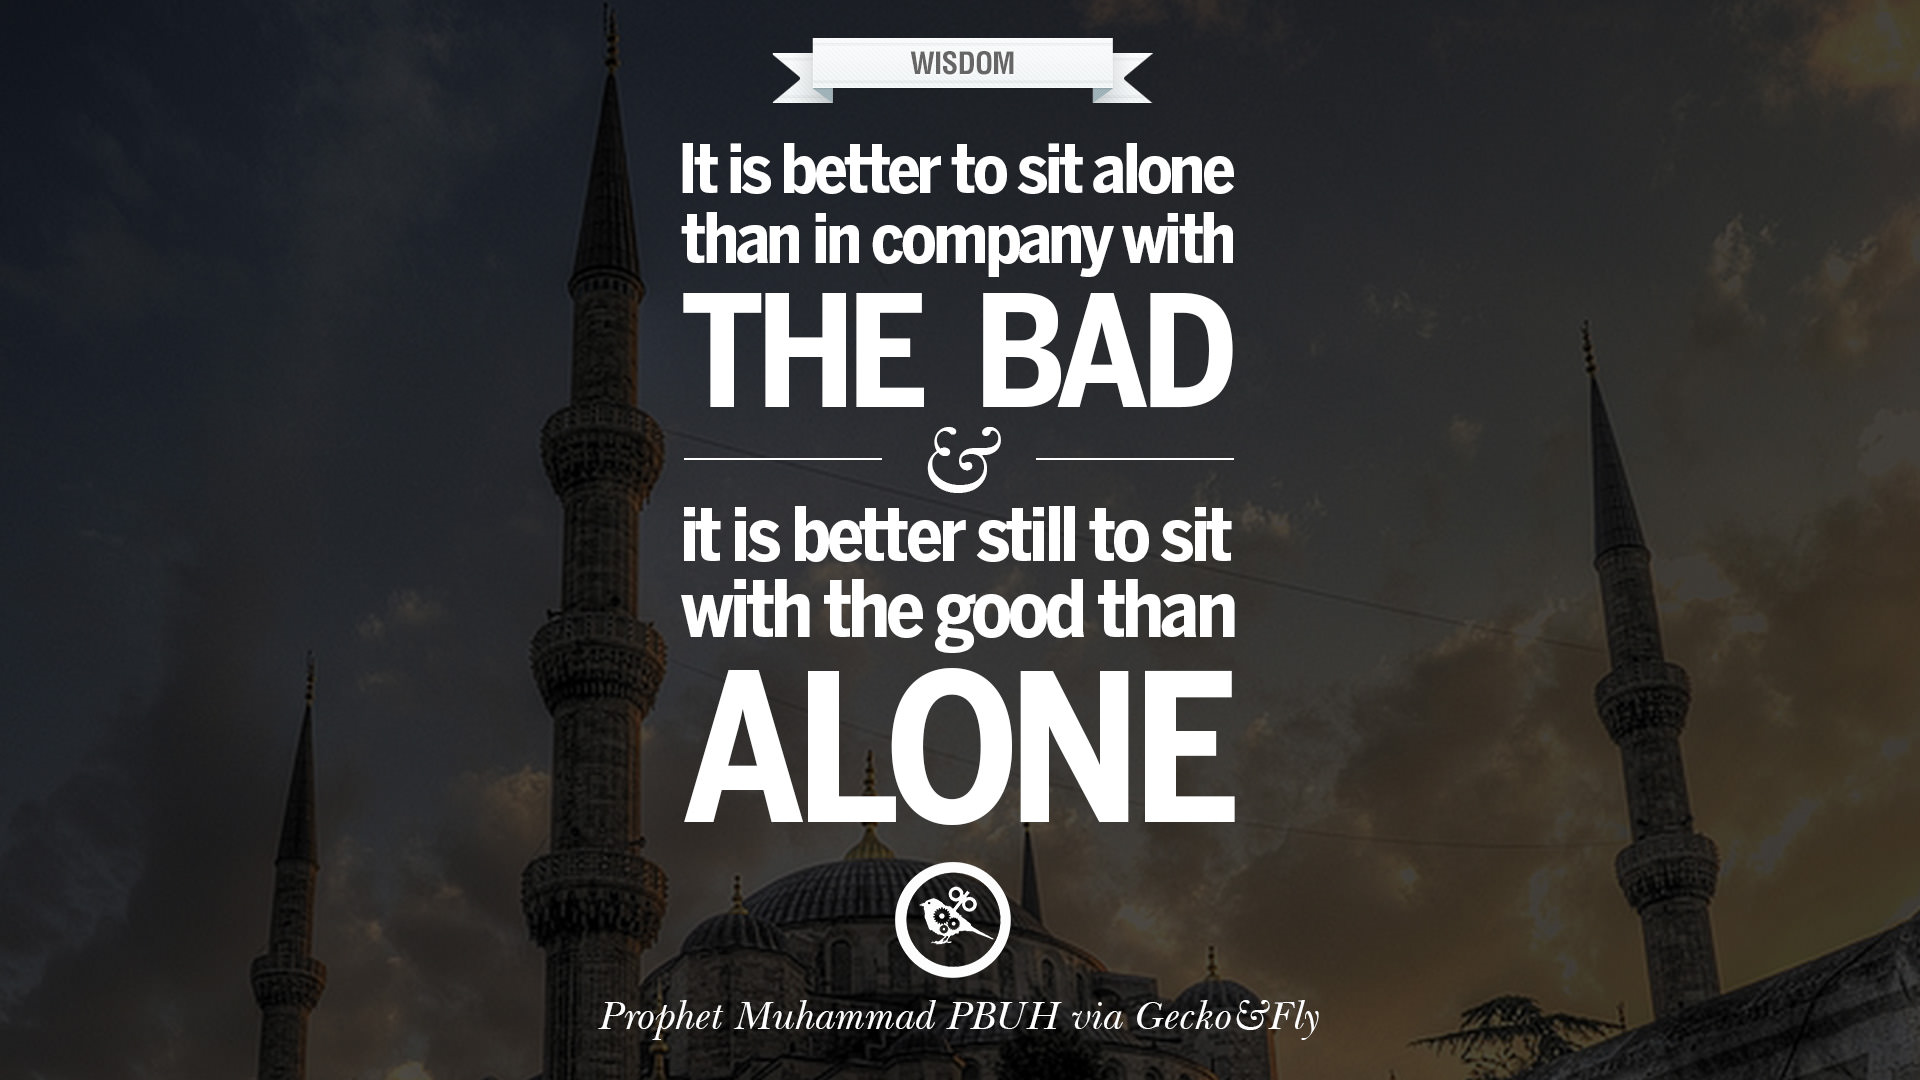 It is better to sit alone in company with the bad and it is better still to sit with the good than alone